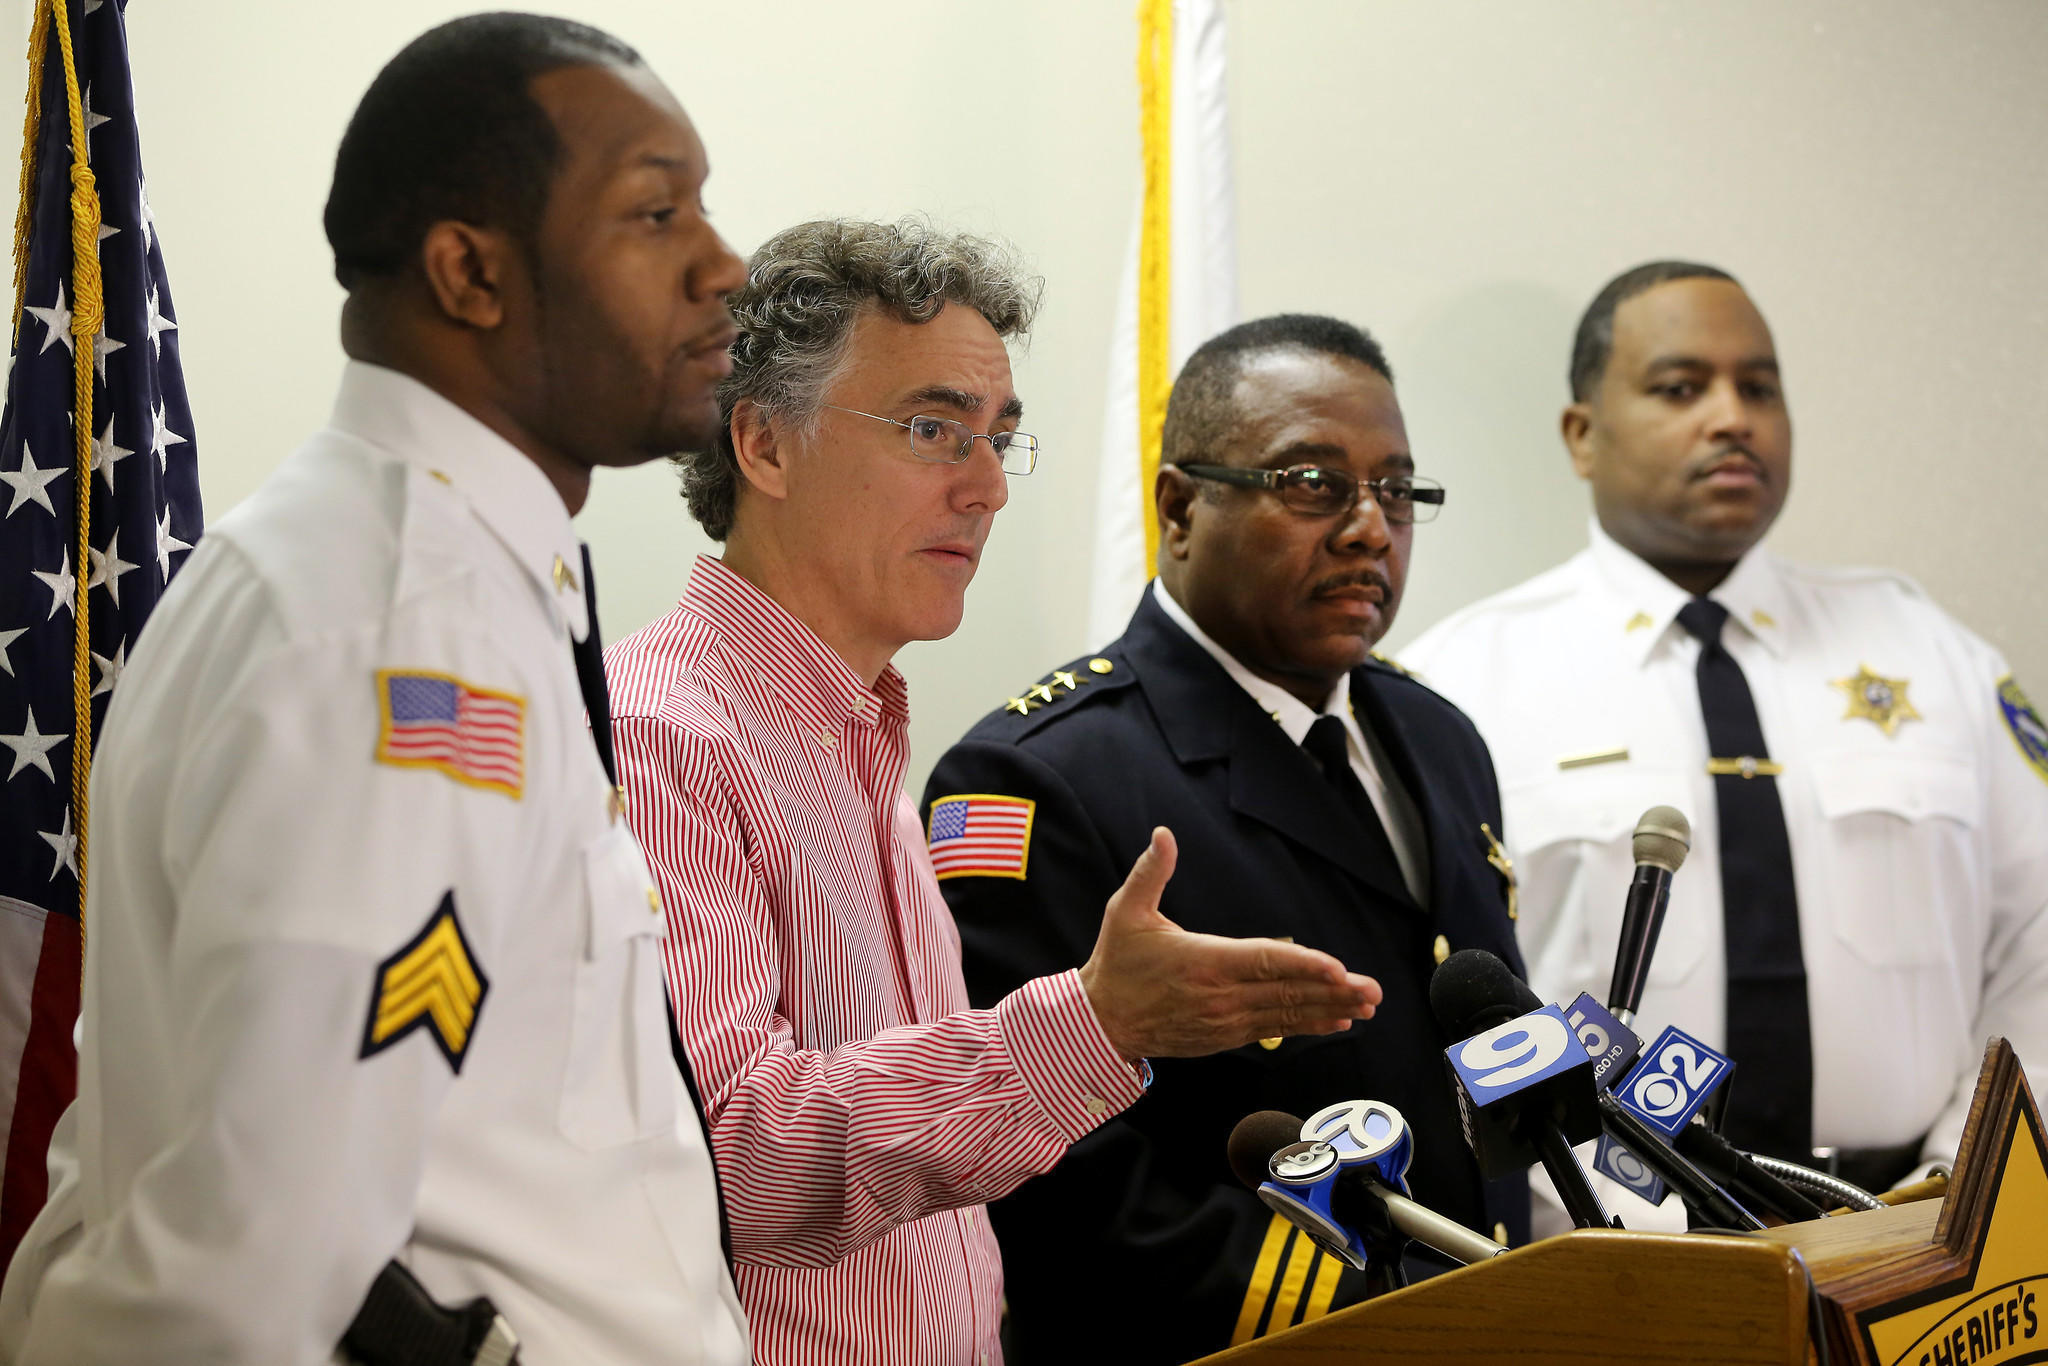 Cook County sheriff Tom Dart, second from left, and Dixmoor police chief Ronald Burge, second from right, announce the reopening of the investigation into the 1991 murder of 14-year-old Cateresa Matthews.